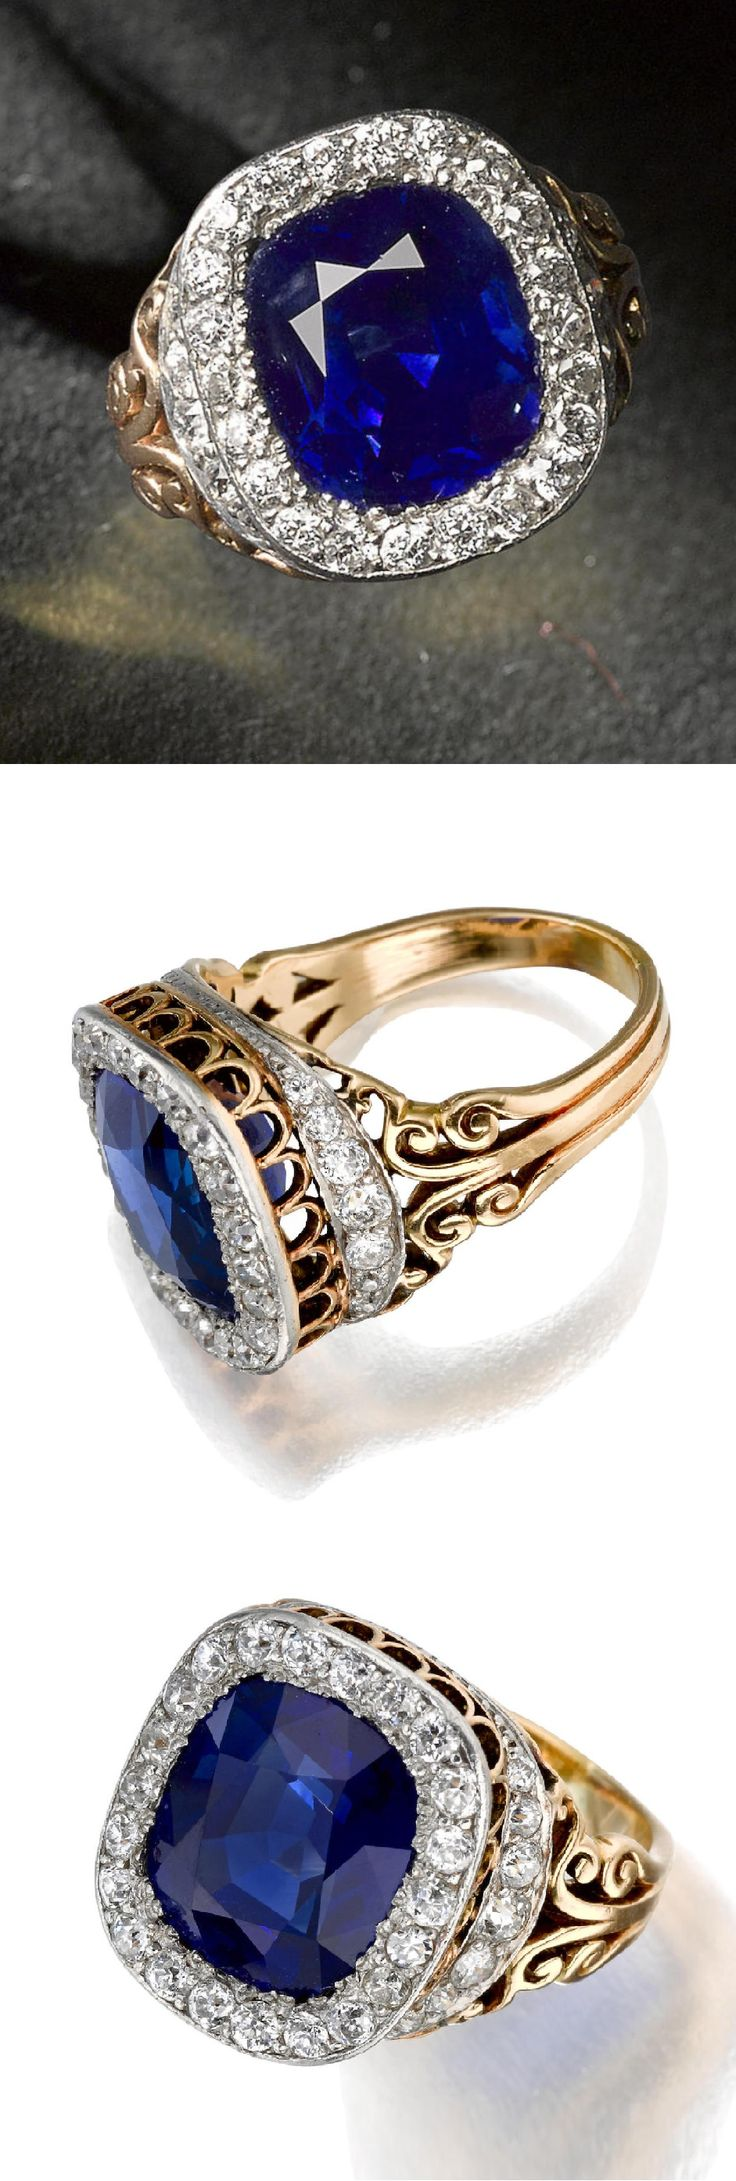 Shreve & Co. - An antique sapphire and diamond ring, circa 1900. Centring a cushion mixed-cut sapphire, weighing approximately 6.90 carats, within a raised gallery of old European-cut diamonds and scrolled metal work; signed; mounted in platinum and 18k gold. #Shreve #antique #ring